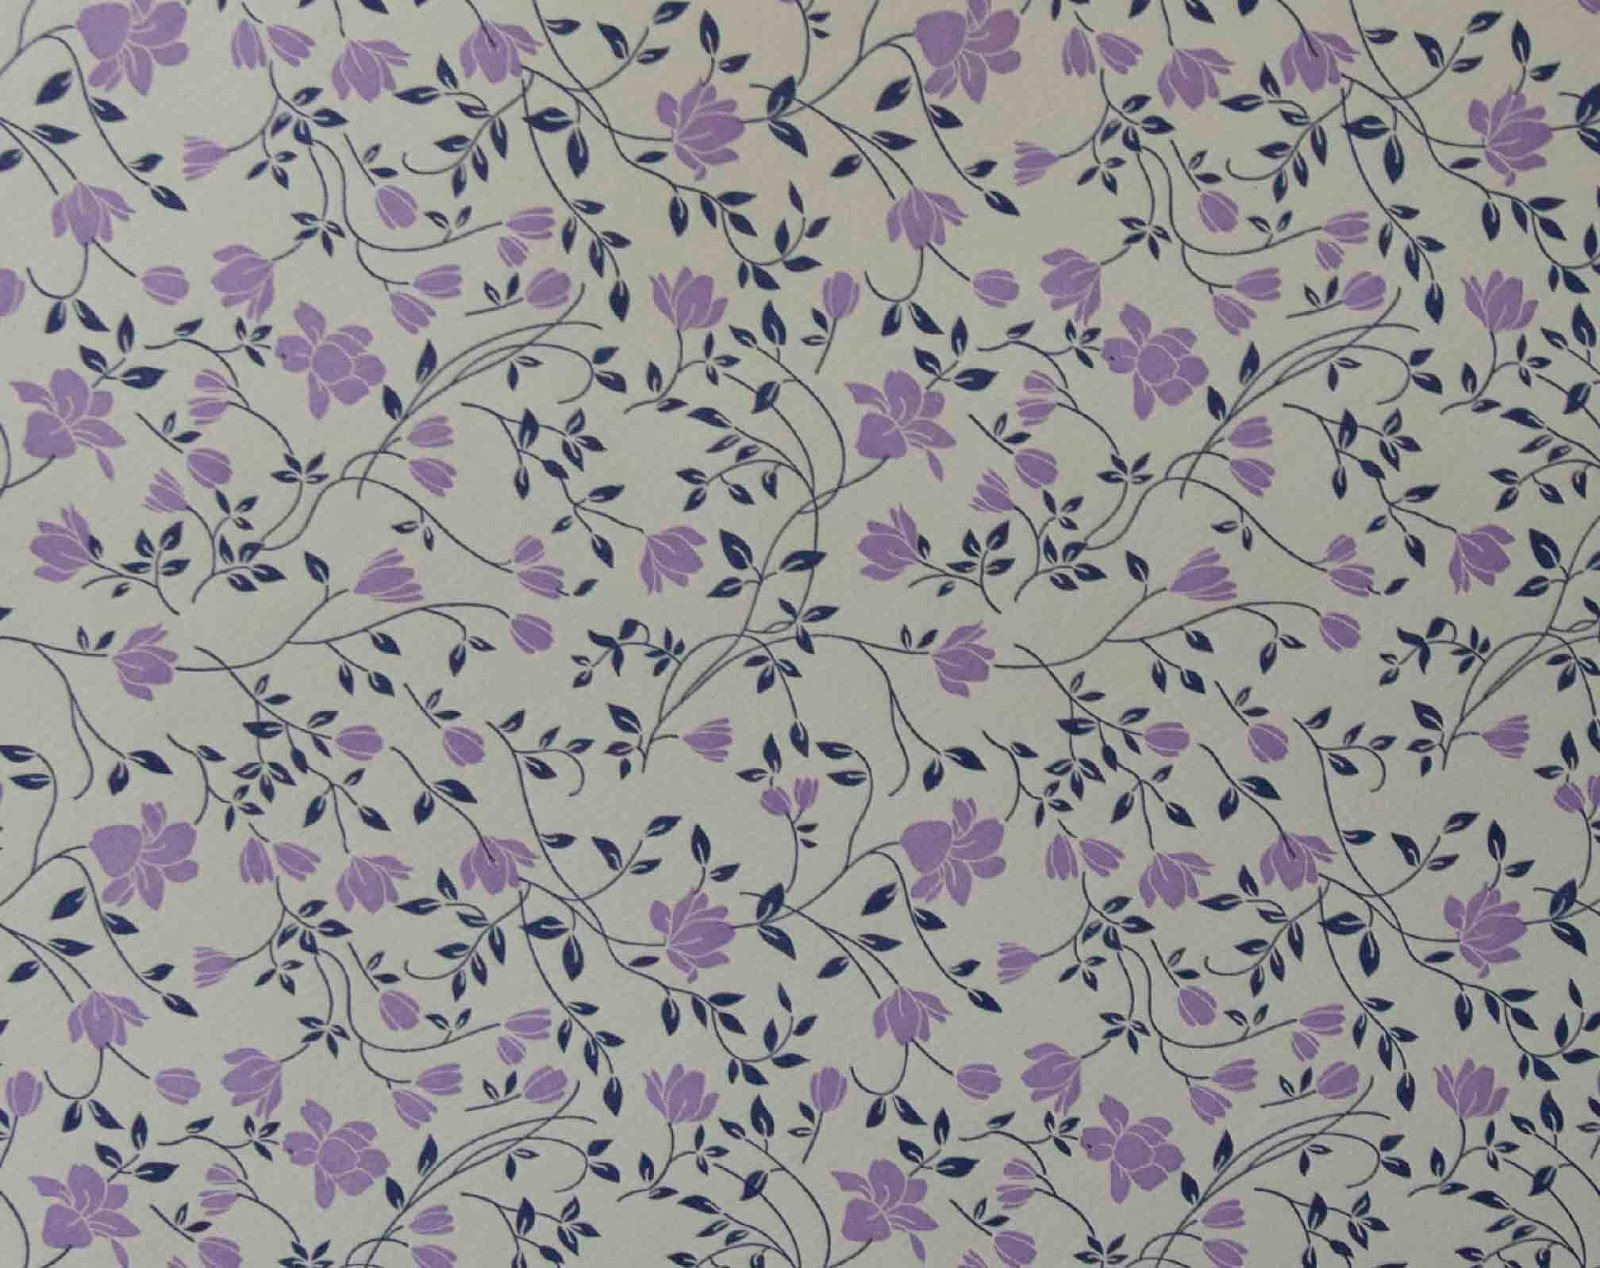 Suitbook, hojas, morado, papel, papier, carte, leaves, purple, florecitas